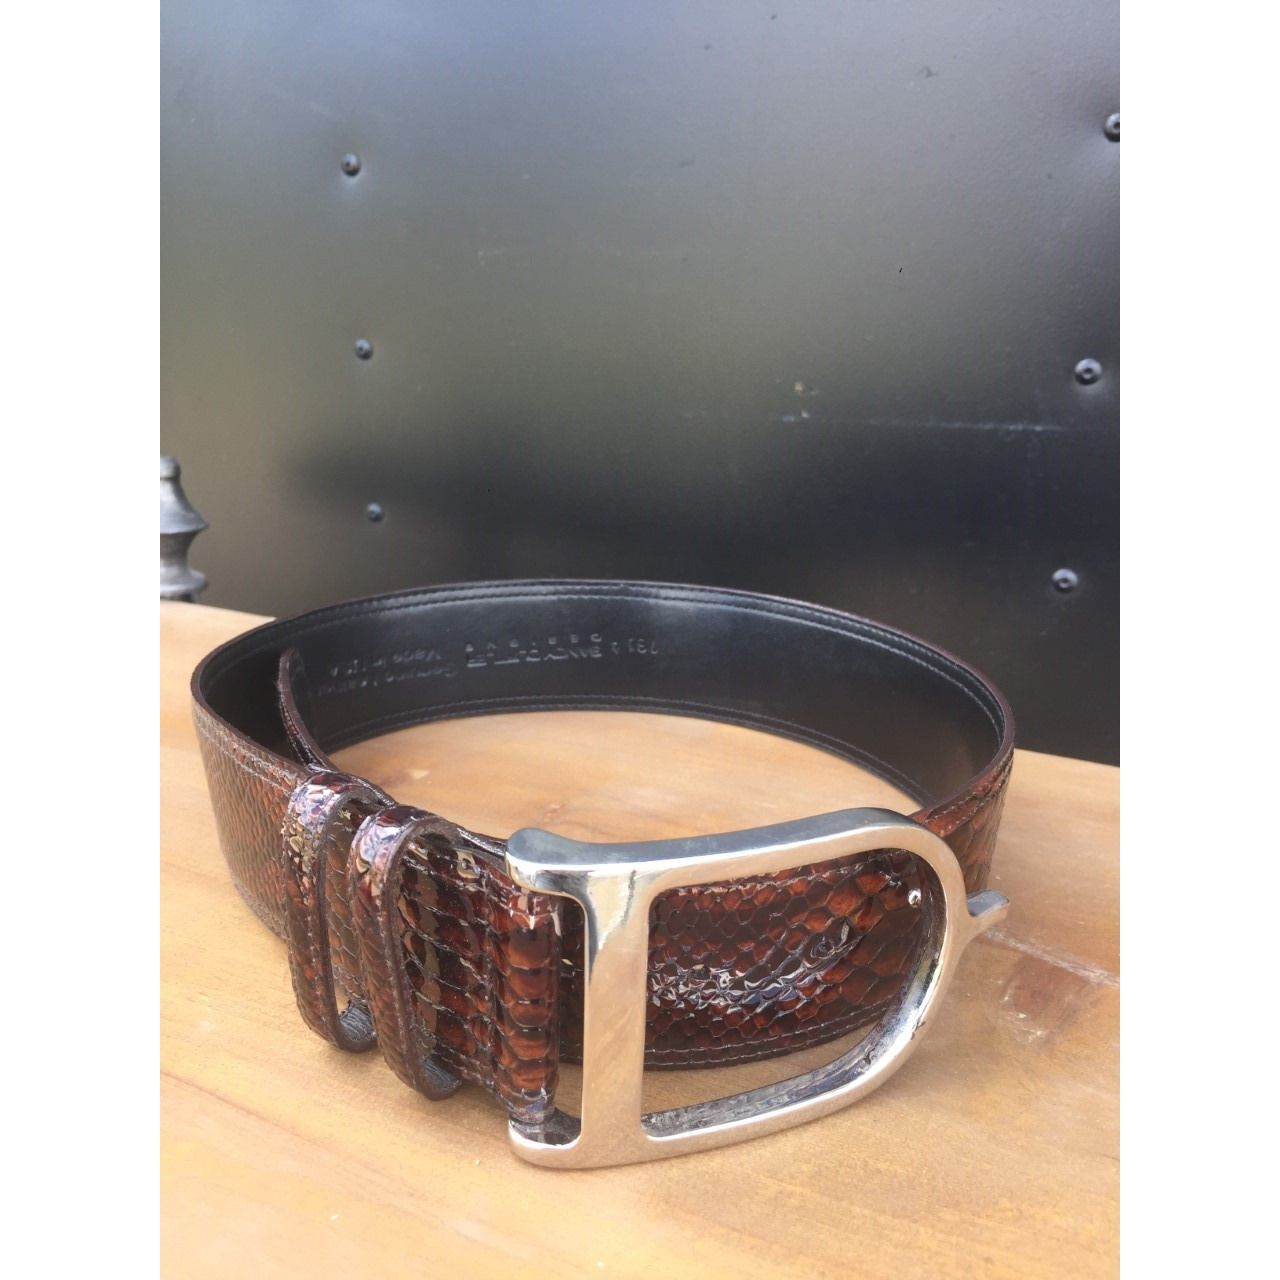 Sandy Duftler Brown Python with Silver Buckle